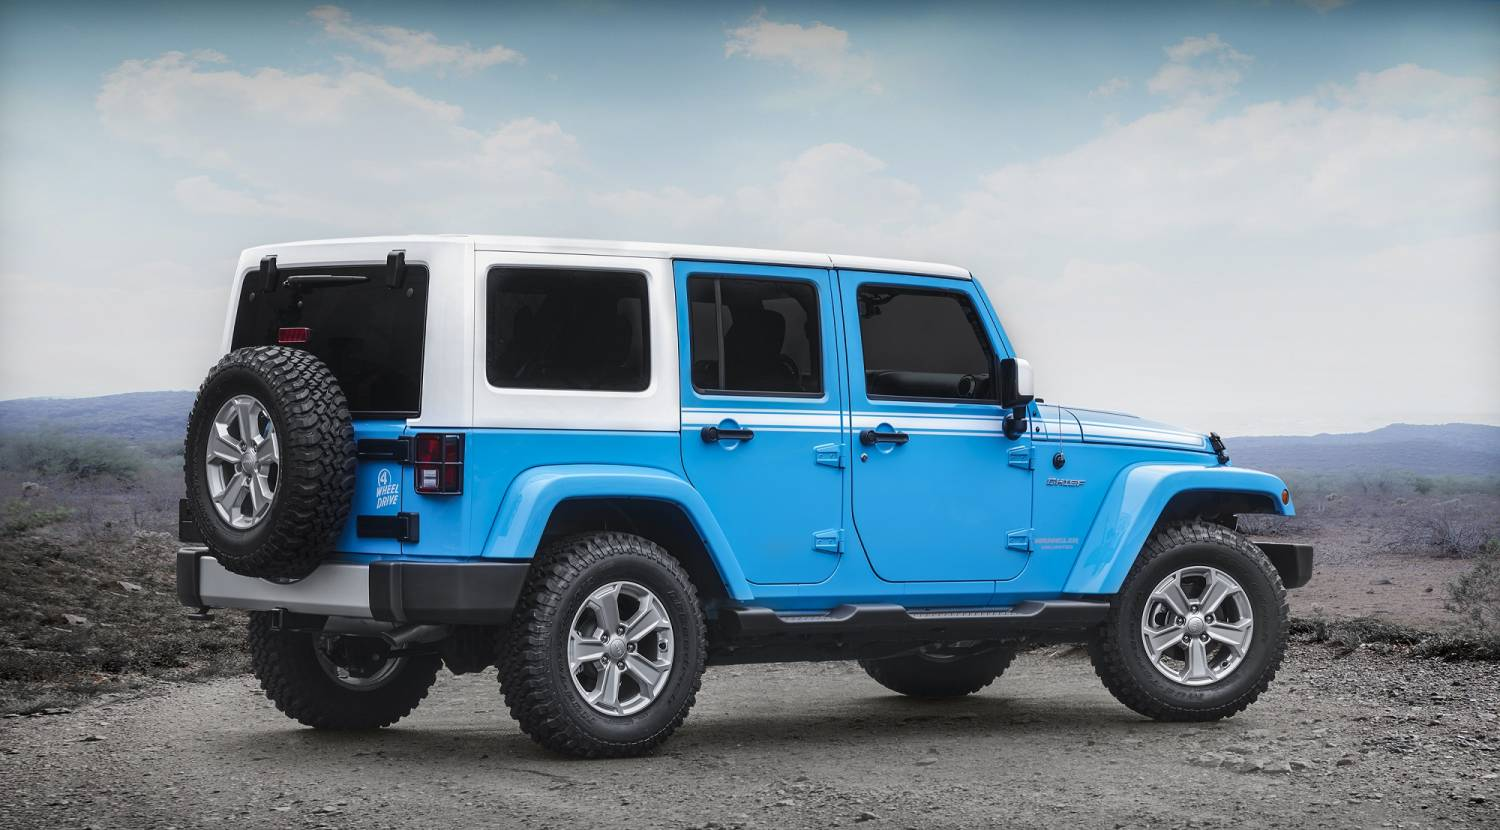 Attractive PrevNext. Tags:autoJeepJeep Wrangler Unlimited Chief